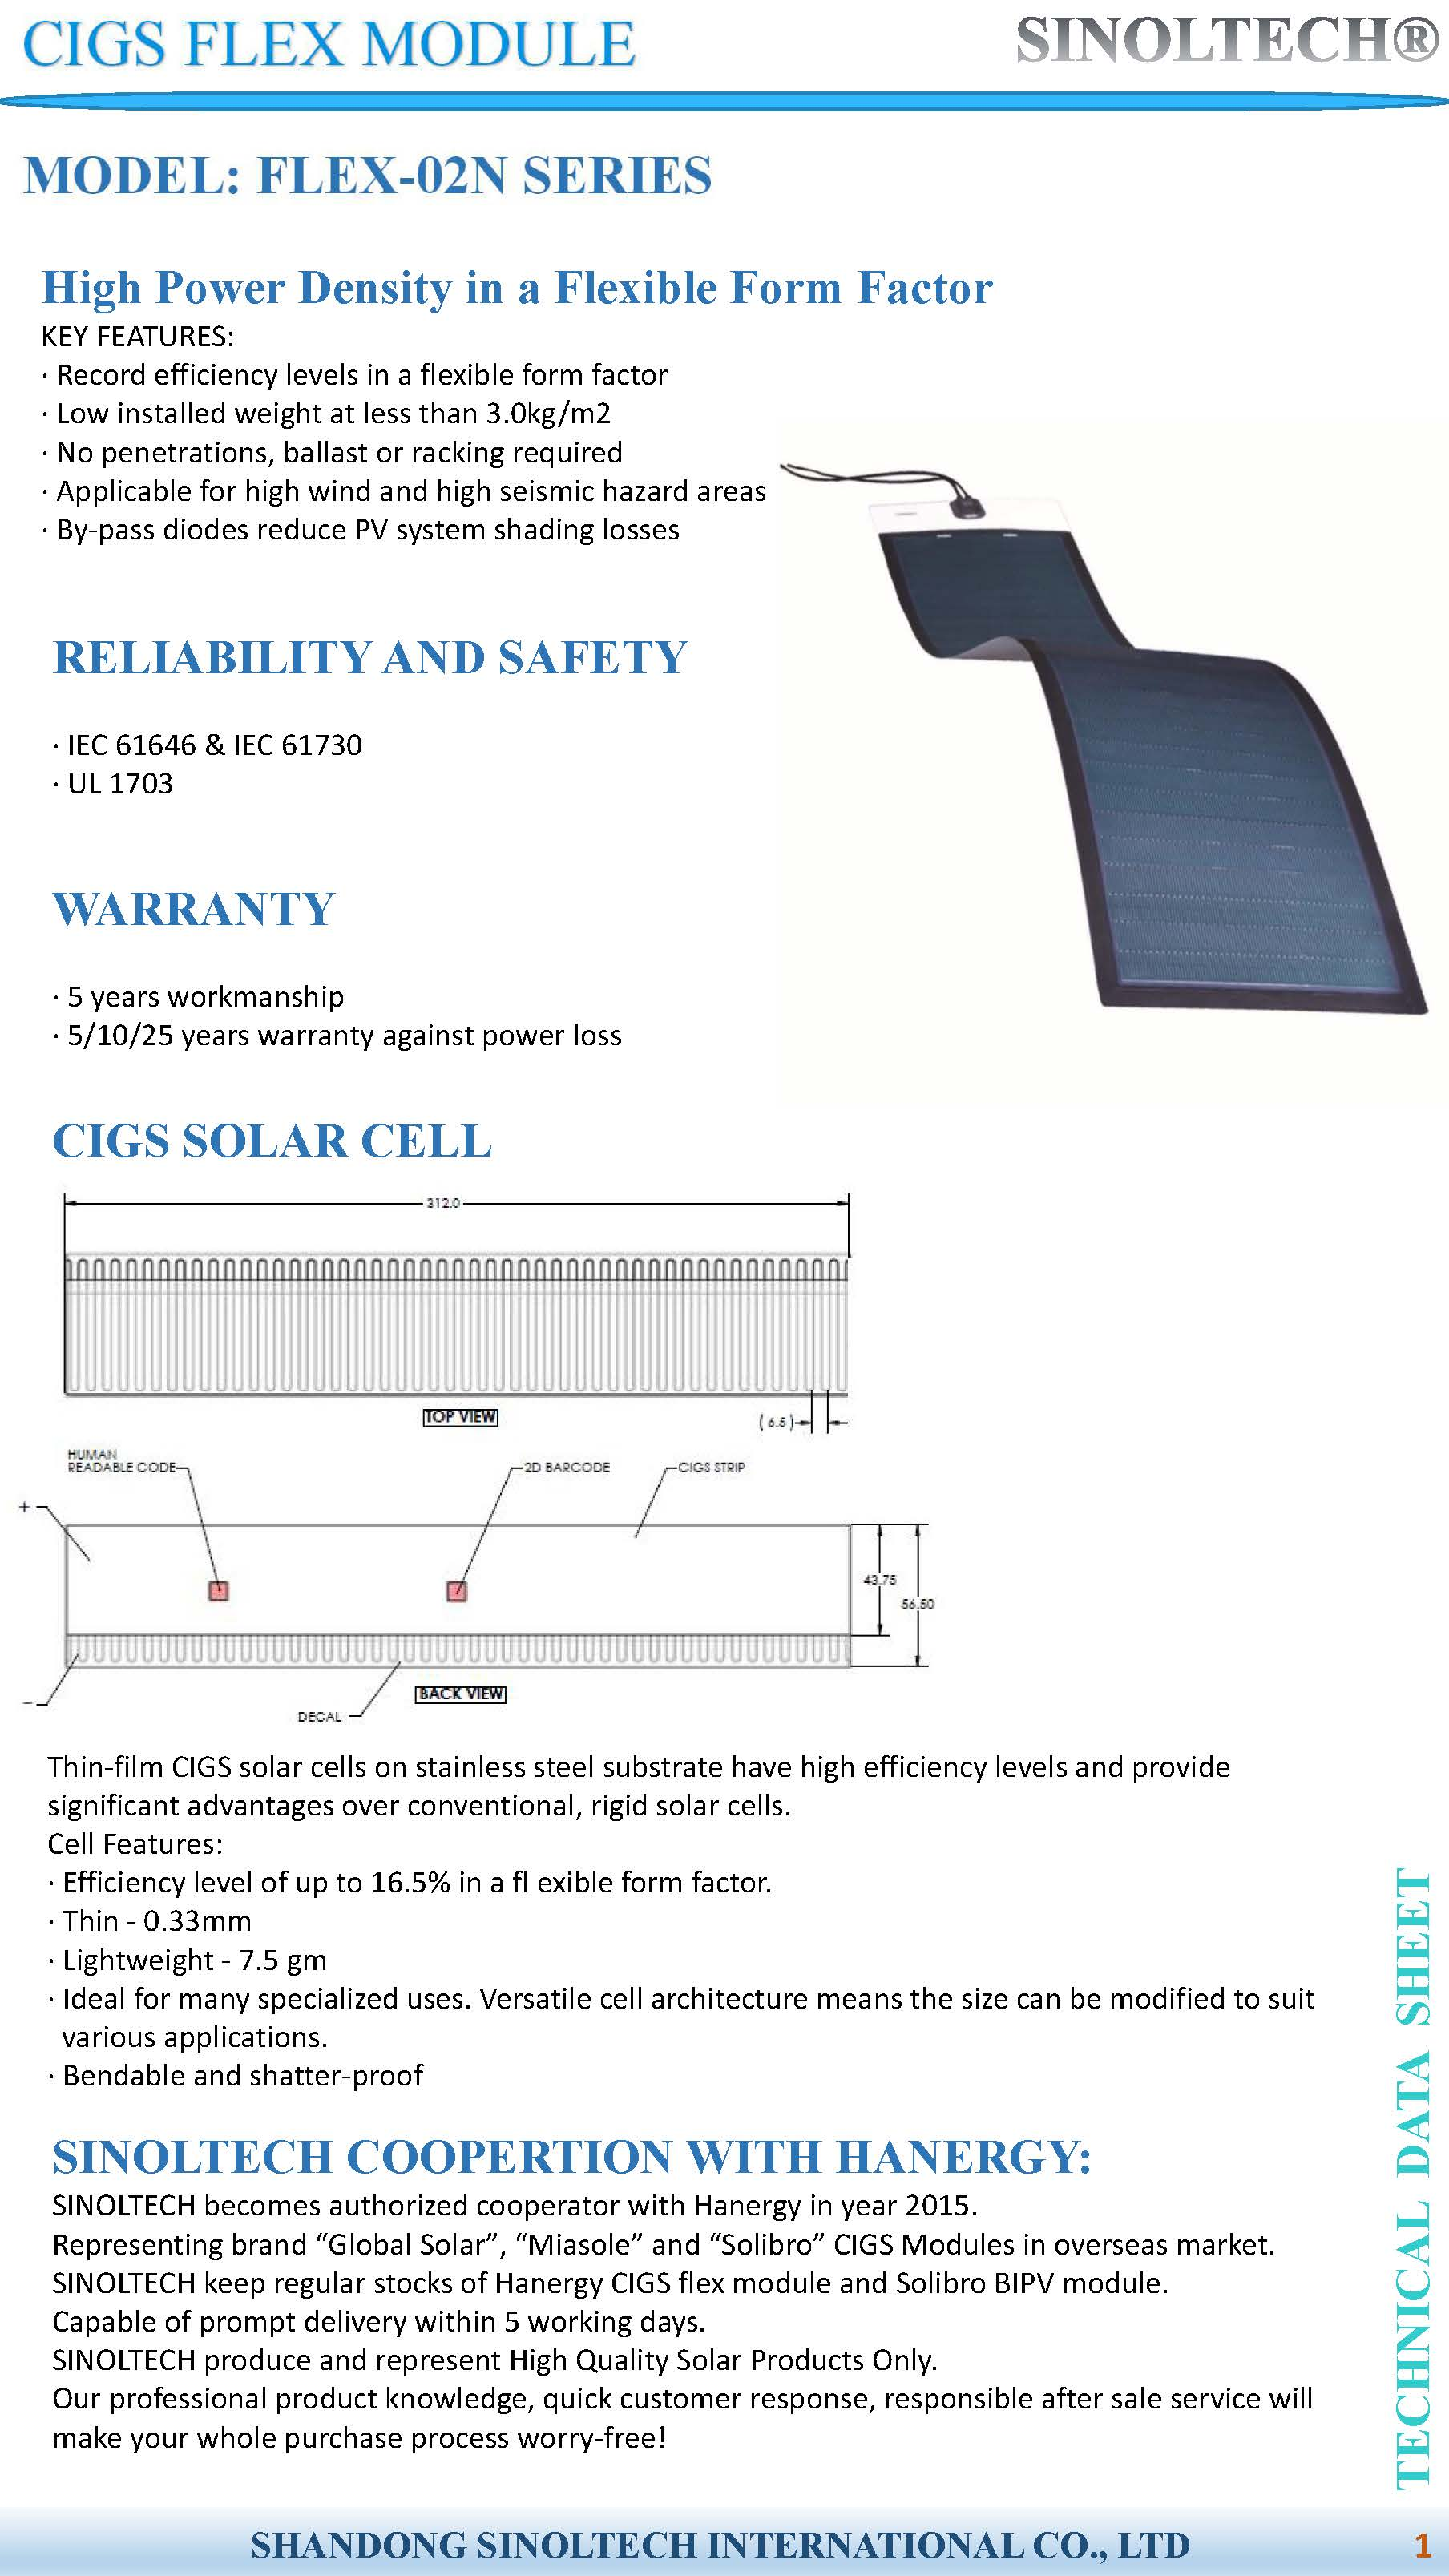 Cigs Flex Solar Modulemiasole Panel With Corrugated Thin Film Cells On Wiring Panels In 370mm Width Flexible Module Miasole Pv